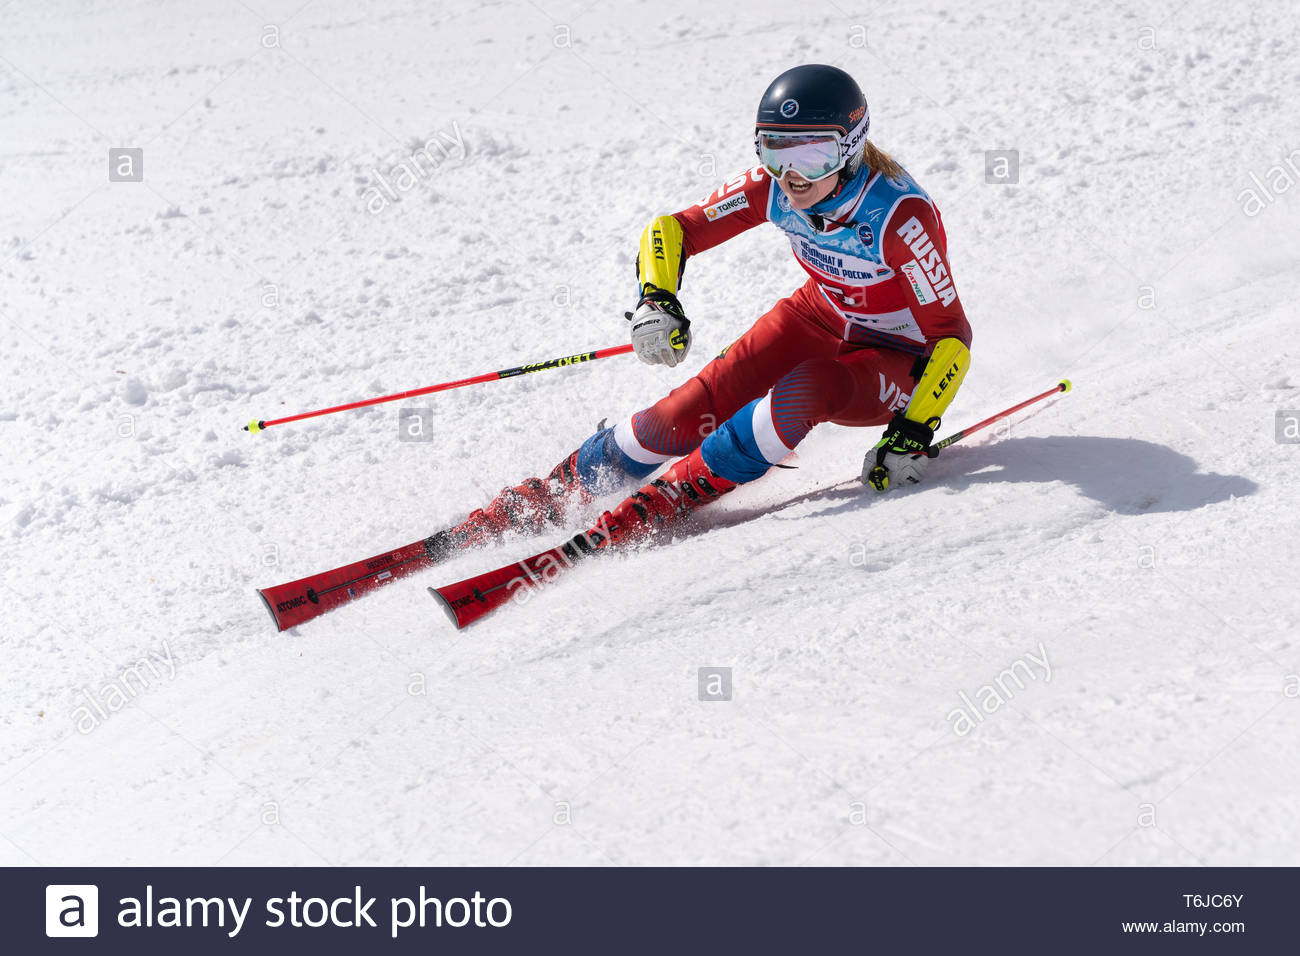 KAMCHATKA PENINSULA, RUSSIAN FEDERATION - APRIL 1, 2019: Mountain skier Ekaterina Tkachenko (Moscow) skiing down snowy mountain slope. Russian Women's - Stock Image